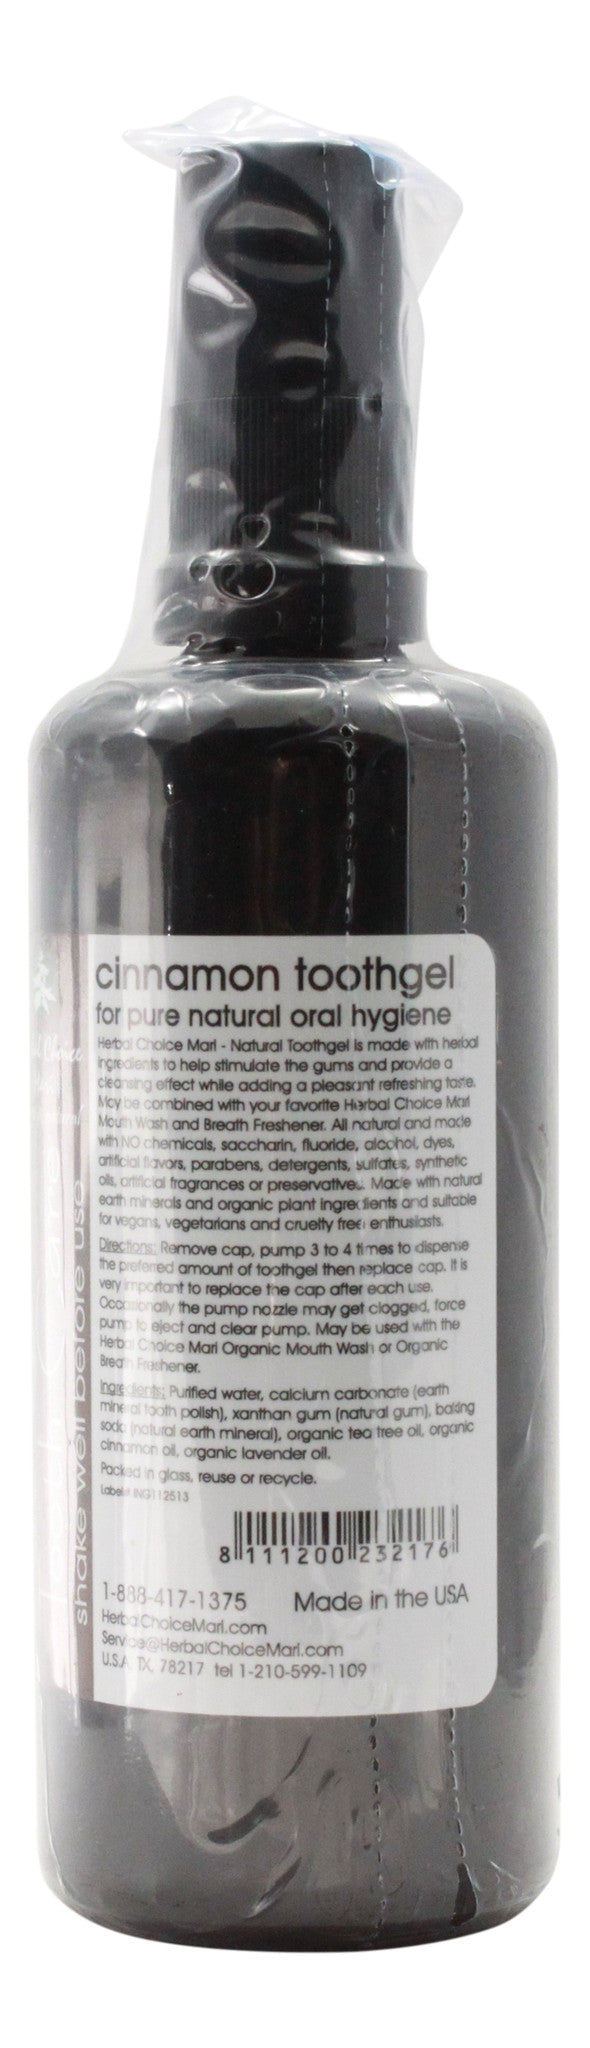 Natural Toothgel - Cinnamon & Baking Soda - 3.4 oz Bottle - Info